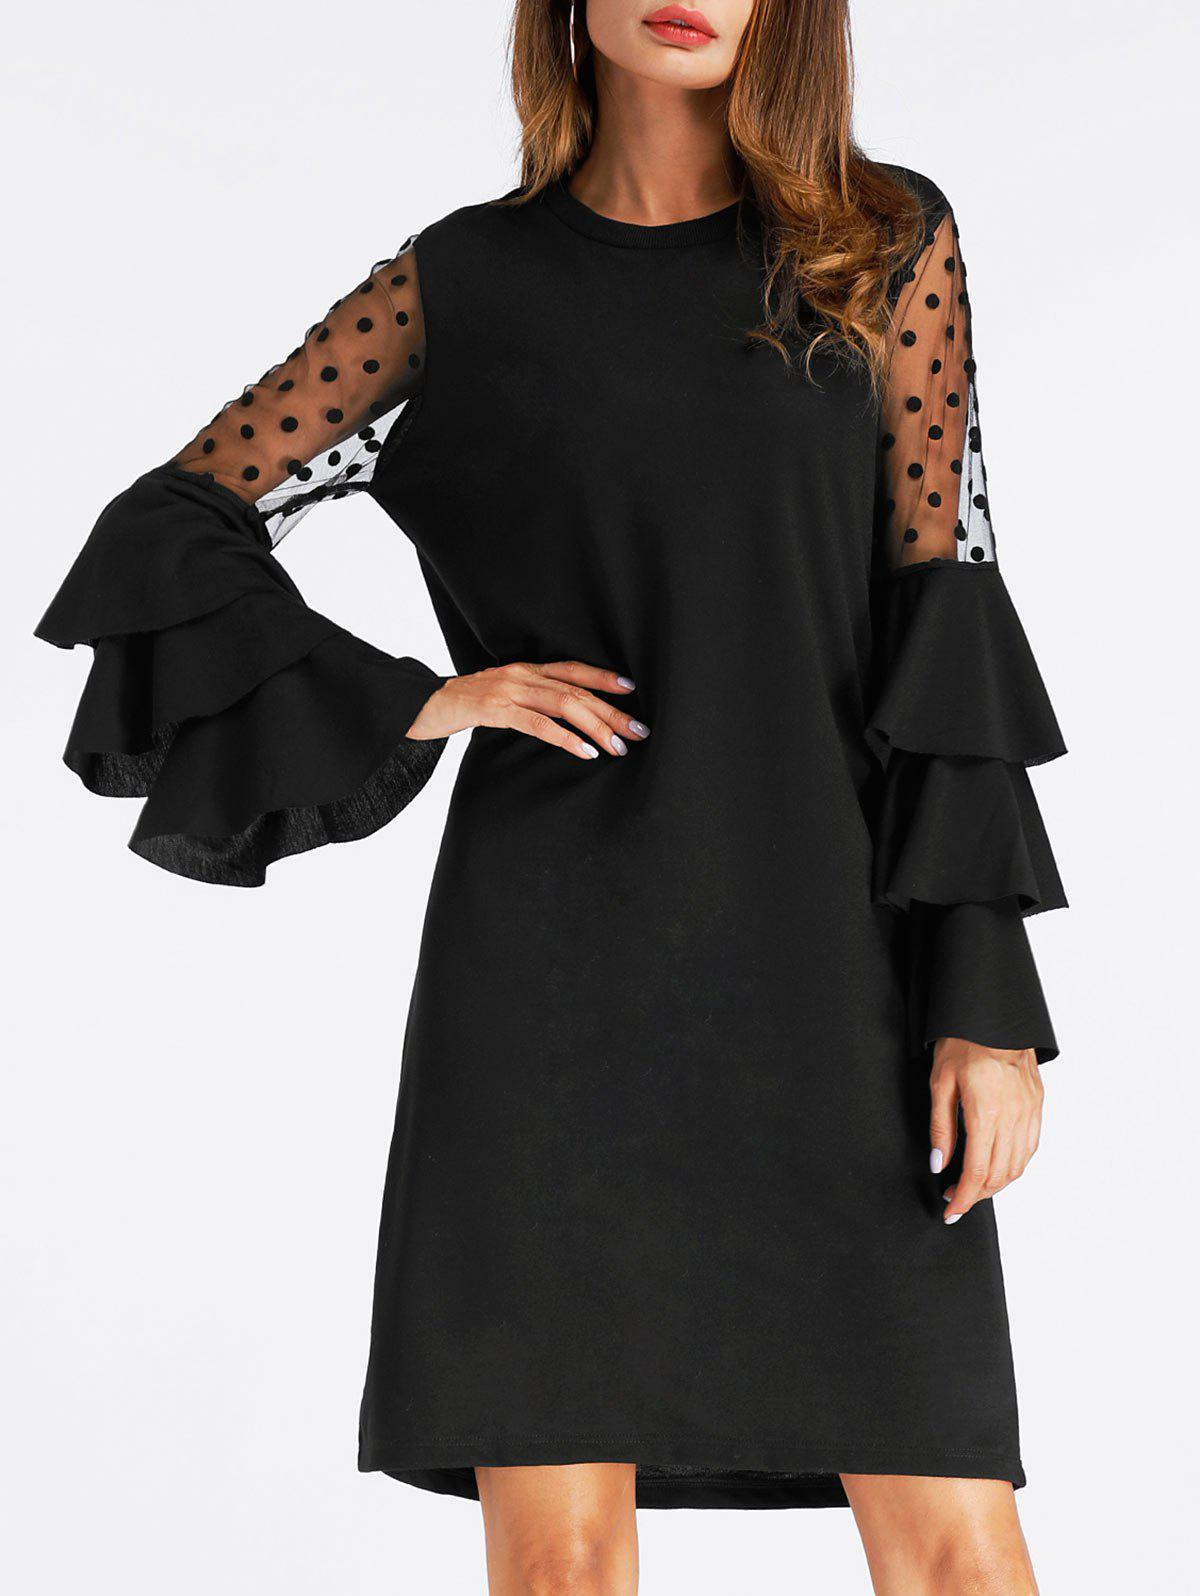 Bell Sleeve Mesh Insert Mini Shift DressWOMEN<br><br>Size: XL; Color: BLACK; Style: Casual; Material: Polyester; Silhouette: Shift; Dresses Length: Mini; Neckline: Crew Neck; Sleeve Type: Flare Sleeve; Sleeve Length: Long Sleeves; Pattern Type: Patchwork; With Belt: No; Season: Fall,Spring; Weight: 0.4000kg; Package Contents: 1 x Dress; Occasion: Casual;